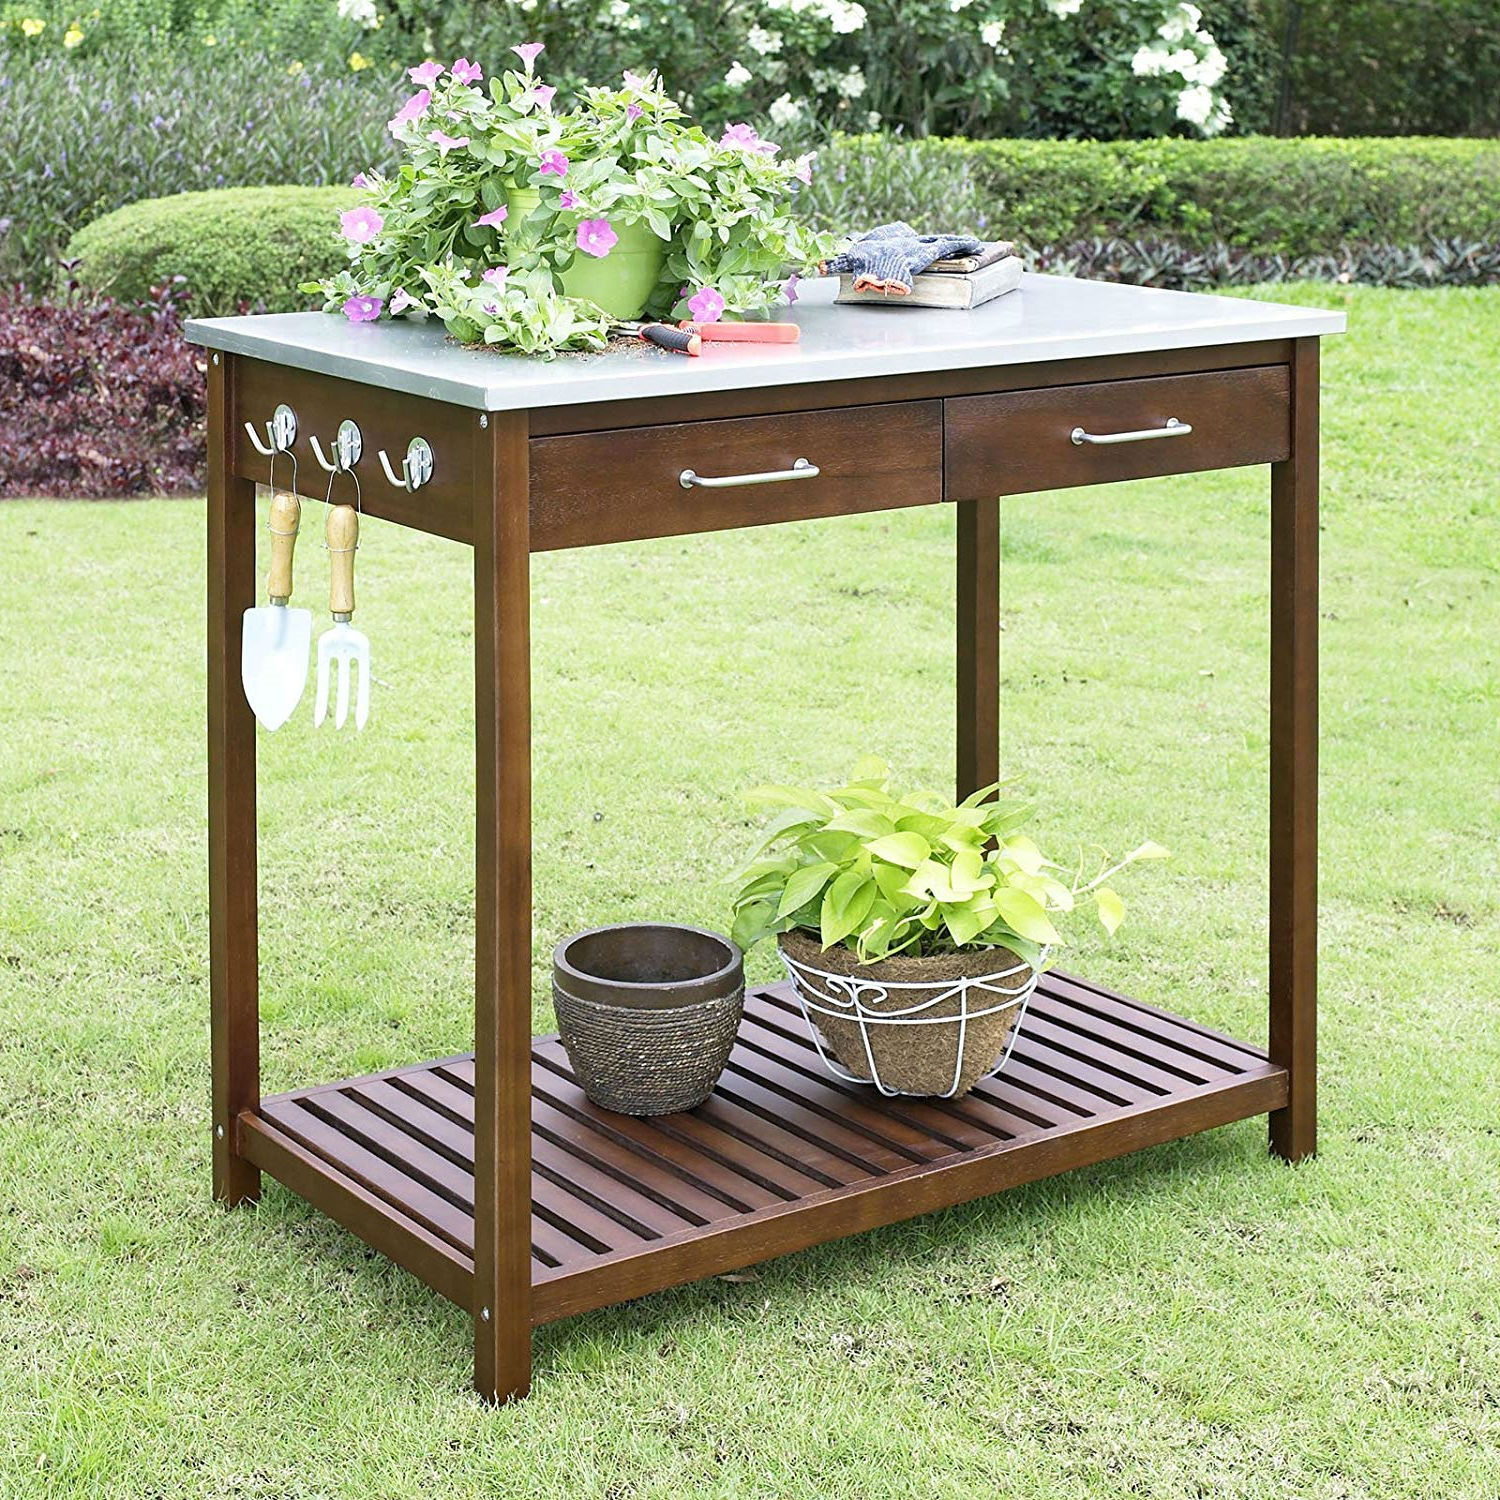 Super Outdoor Solid Wood Potting Bench Work Table With Galvanized Metal Top Ibusinesslaw Wood Chair Design Ideas Ibusinesslaworg